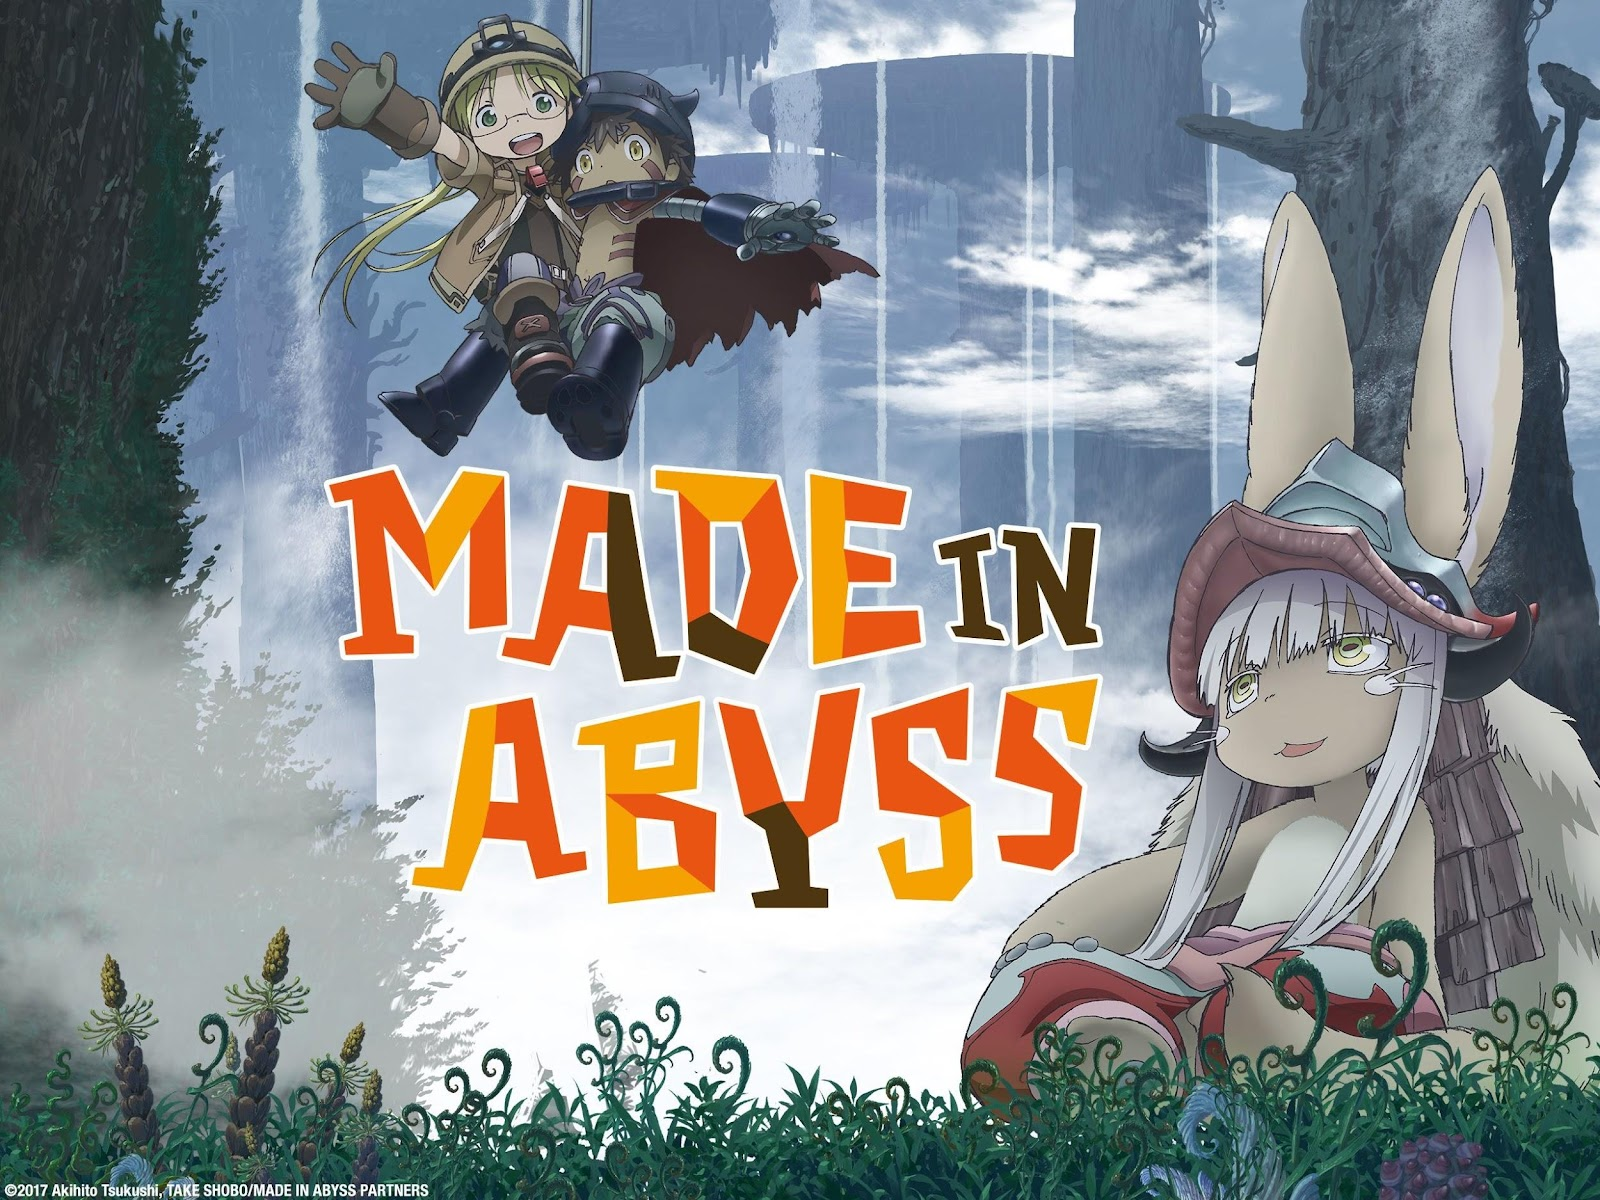 anime blog made in abyss 00004.jpg